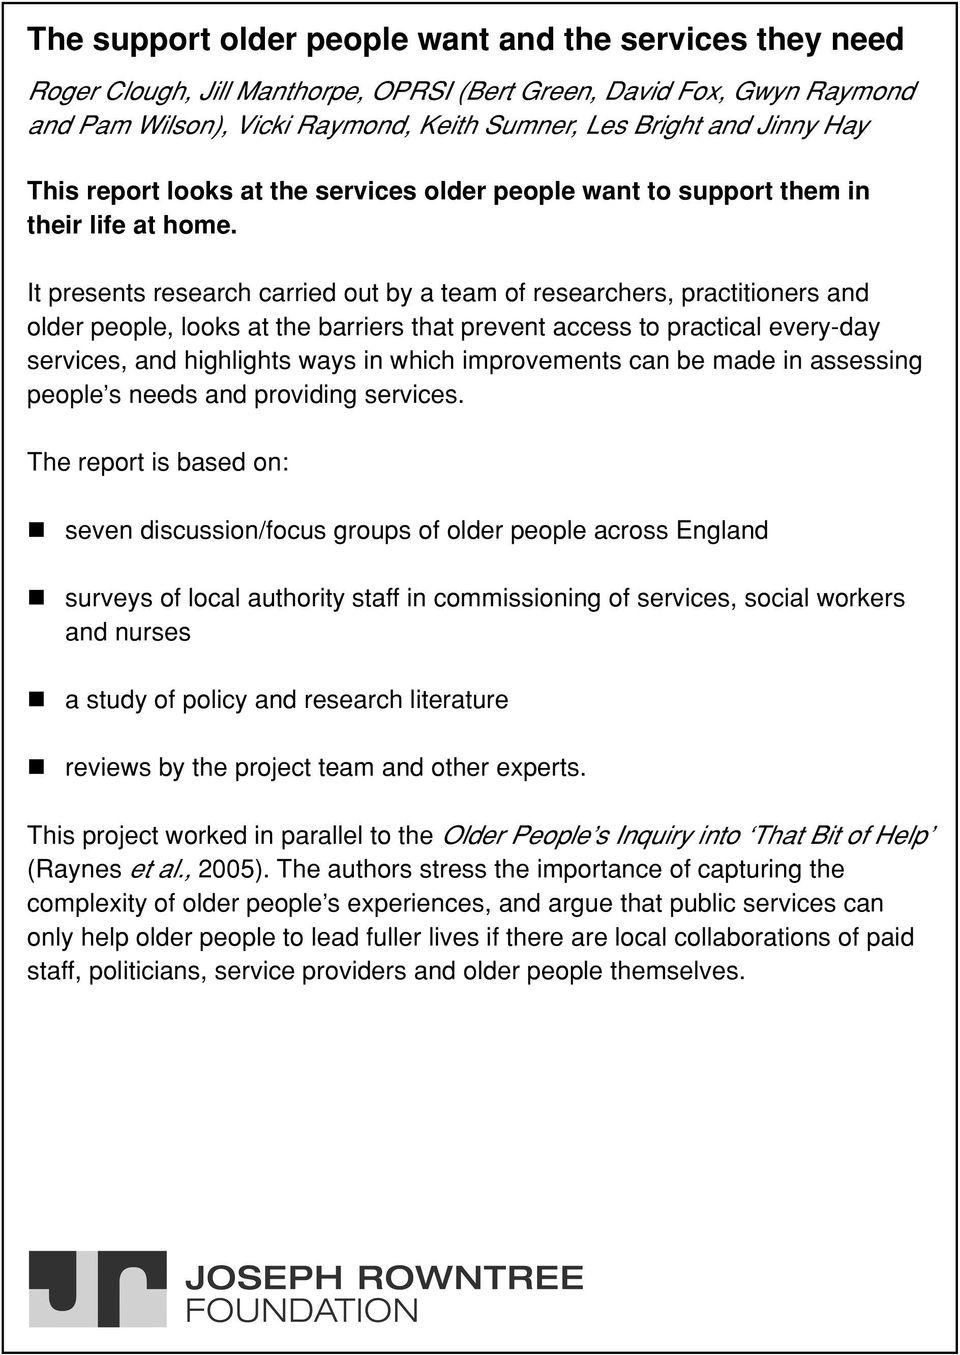 It presents research carried out by a team of researchers, practitioners and older people, looks at the barriers that prevent access to practical every-day services, and highlights ways in which